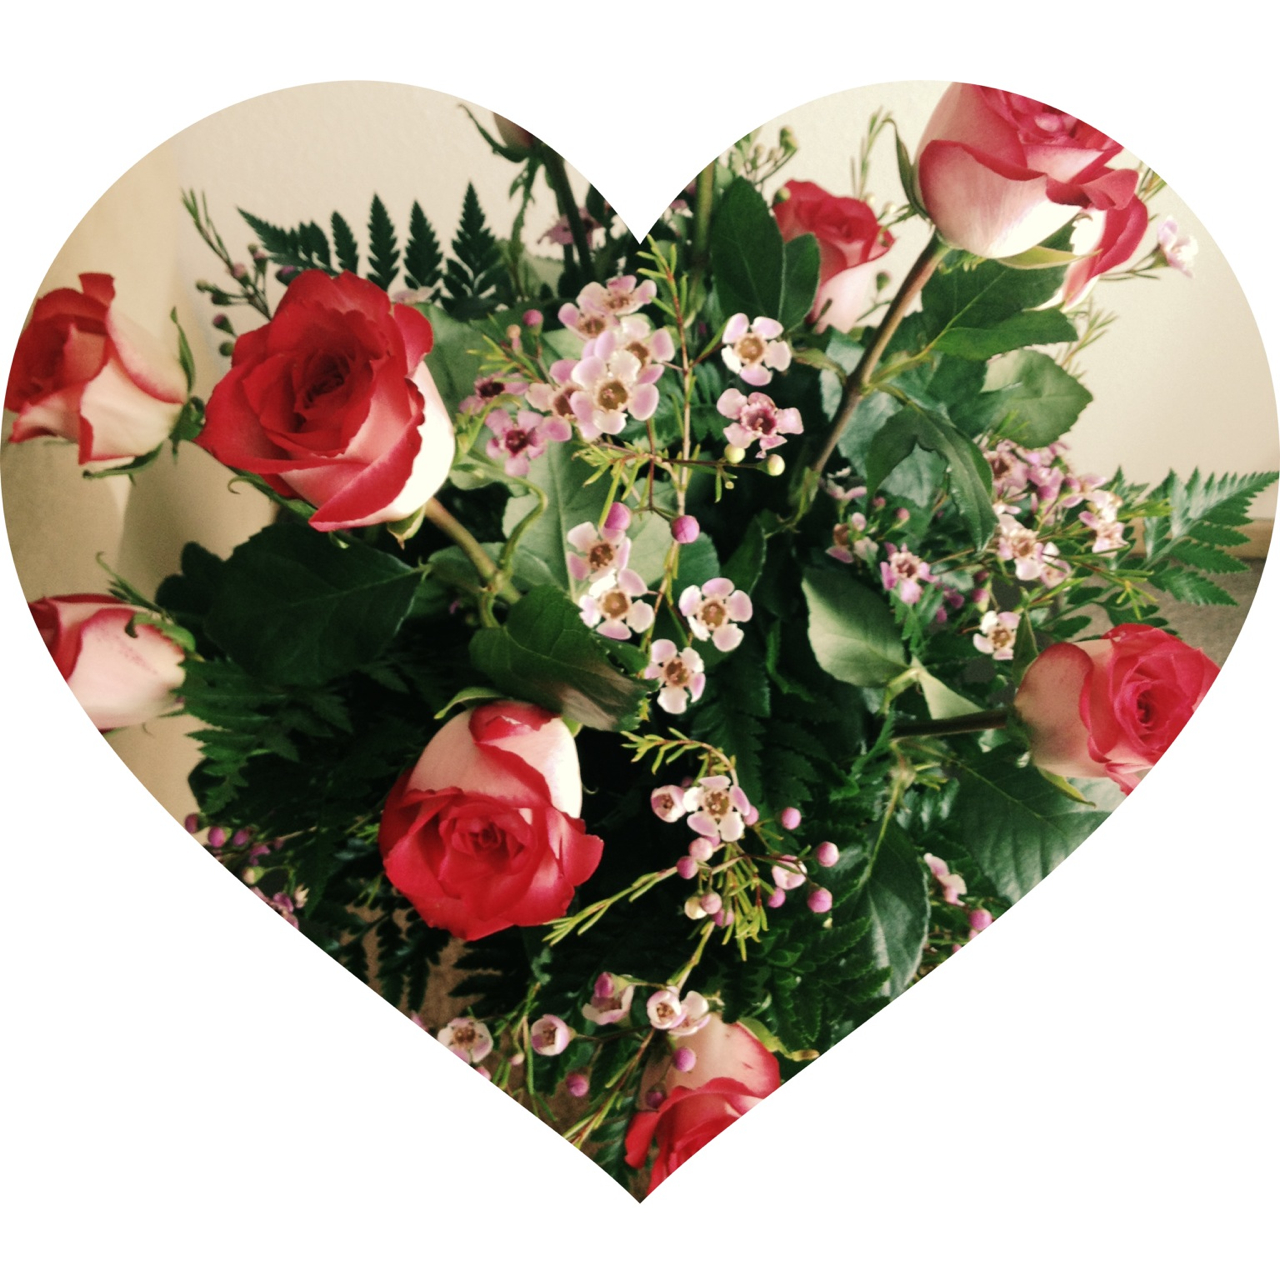 Red roses flowers photo 33624121 fanpop for Images of bouquets of roses